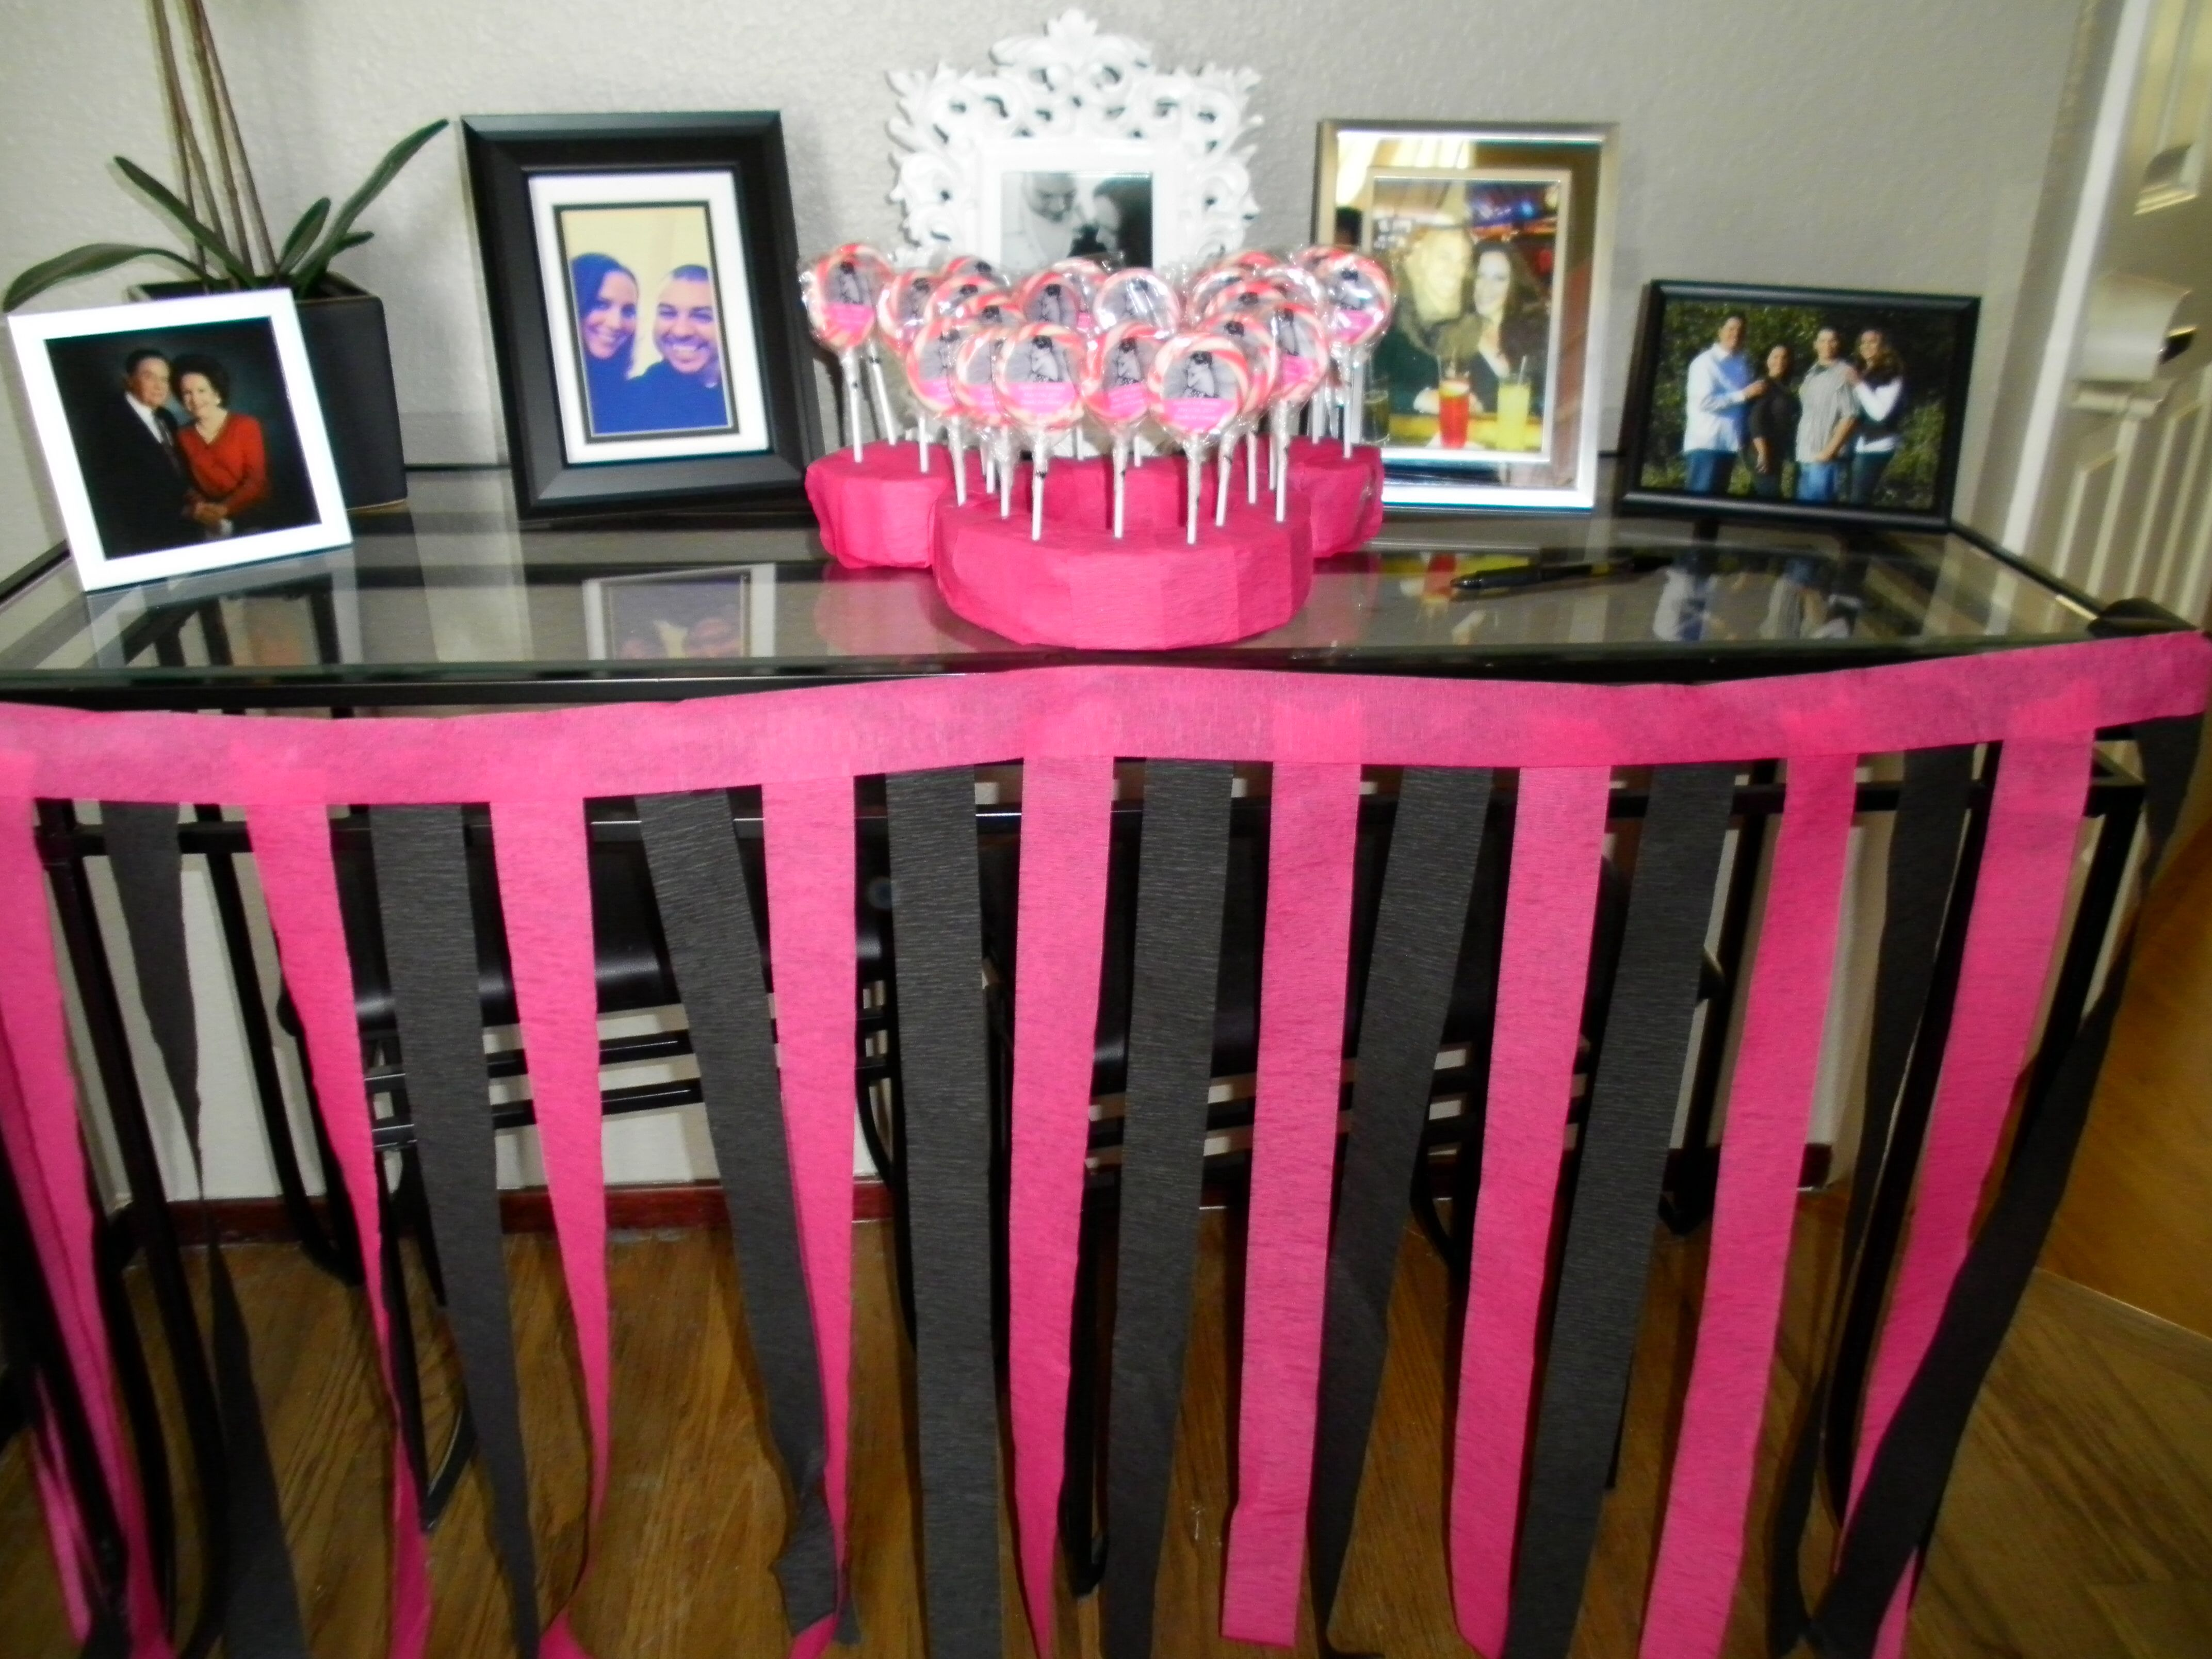 Pink And Black Minnie Mouse Decorations Party Favor Display Table Decorations Minnie Mouse Hot Pink Black